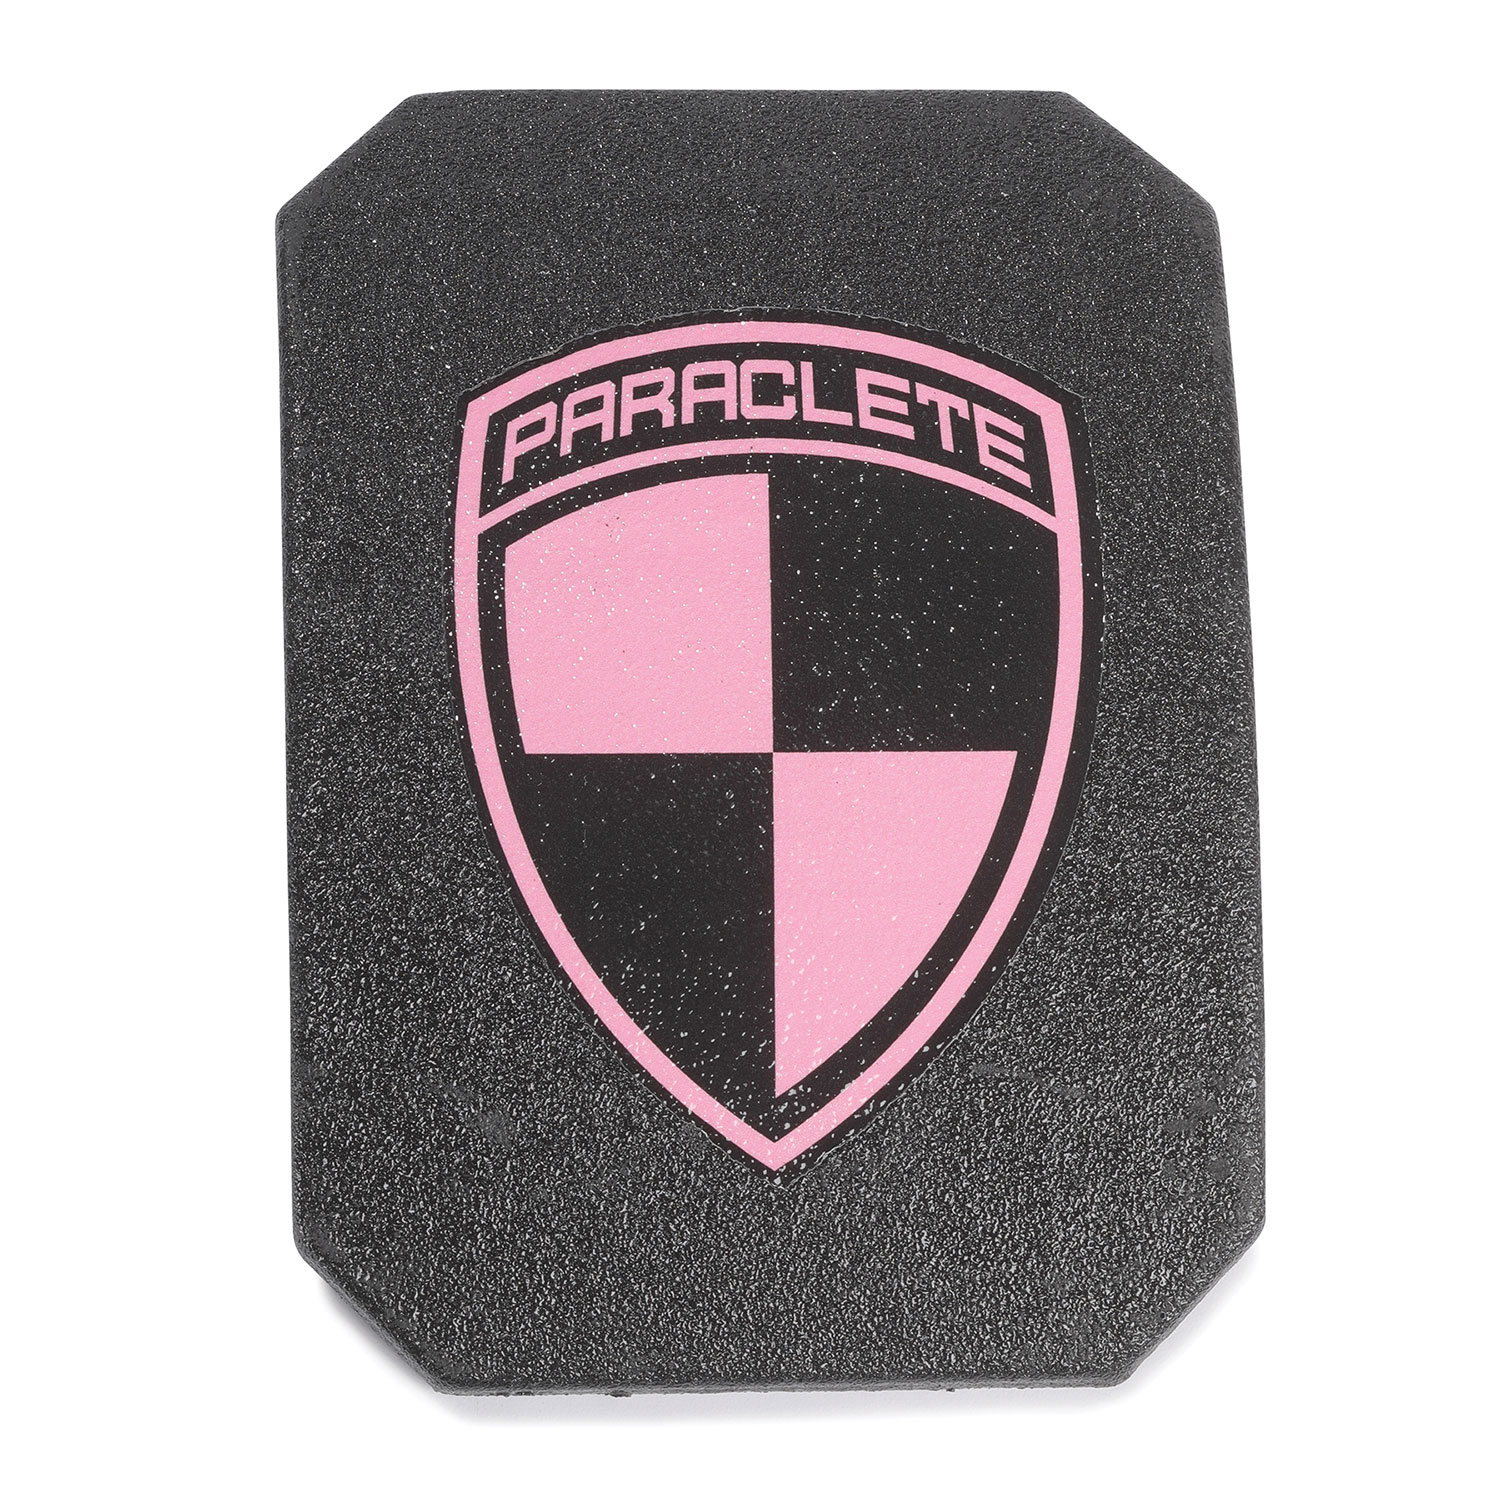 Paraclete Female Speed Plates